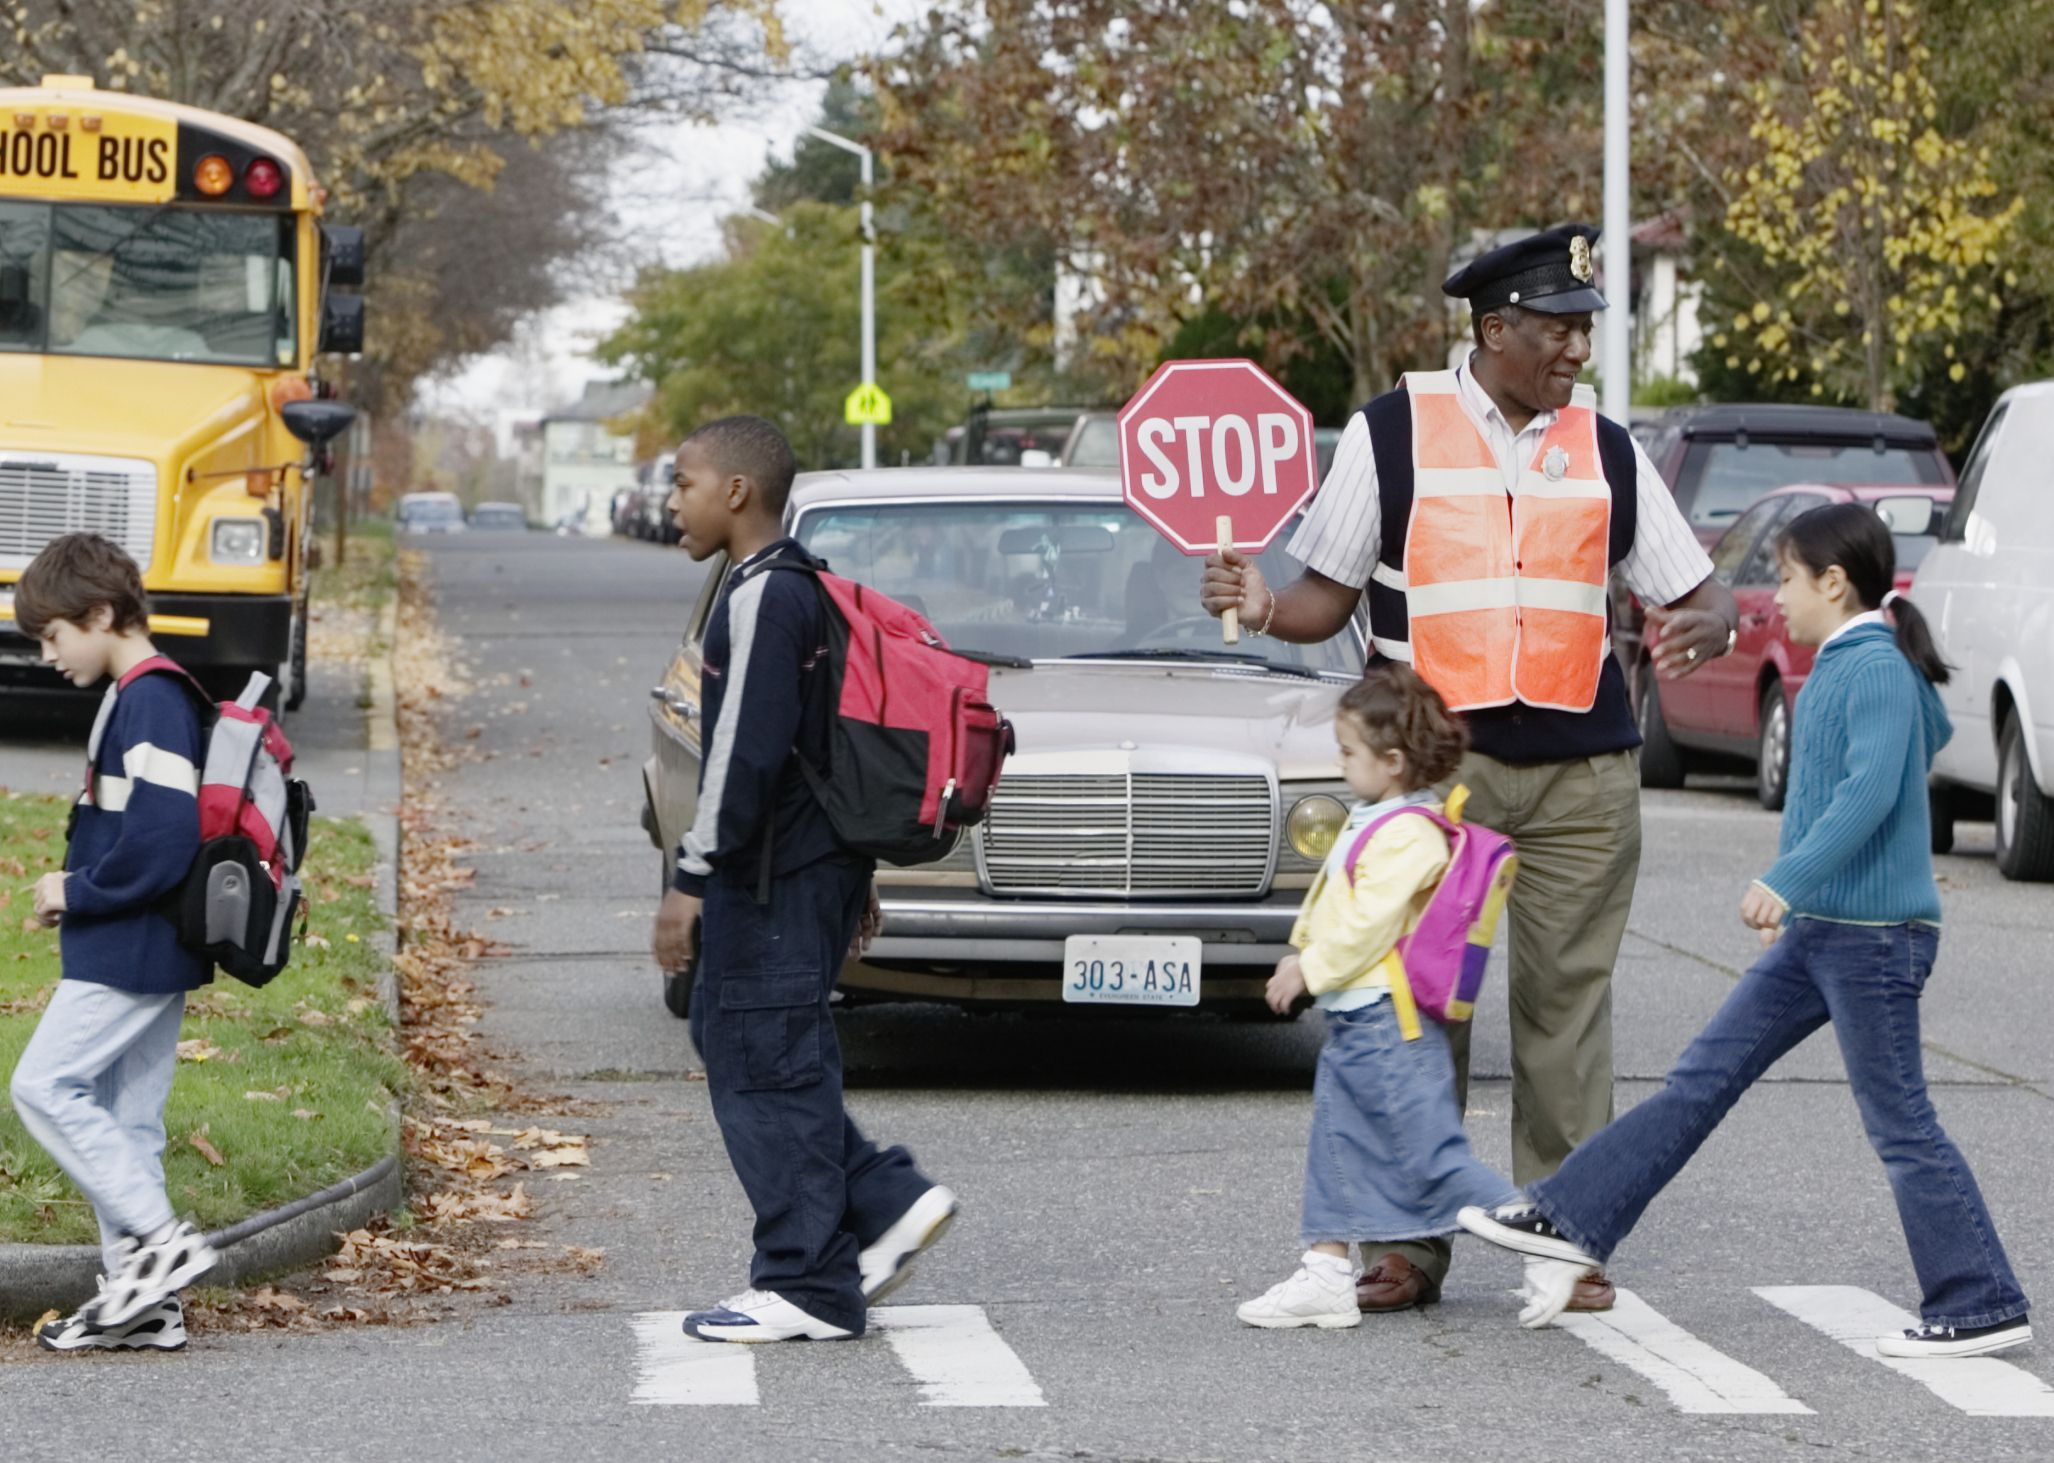 How to Become a Crossing Guard